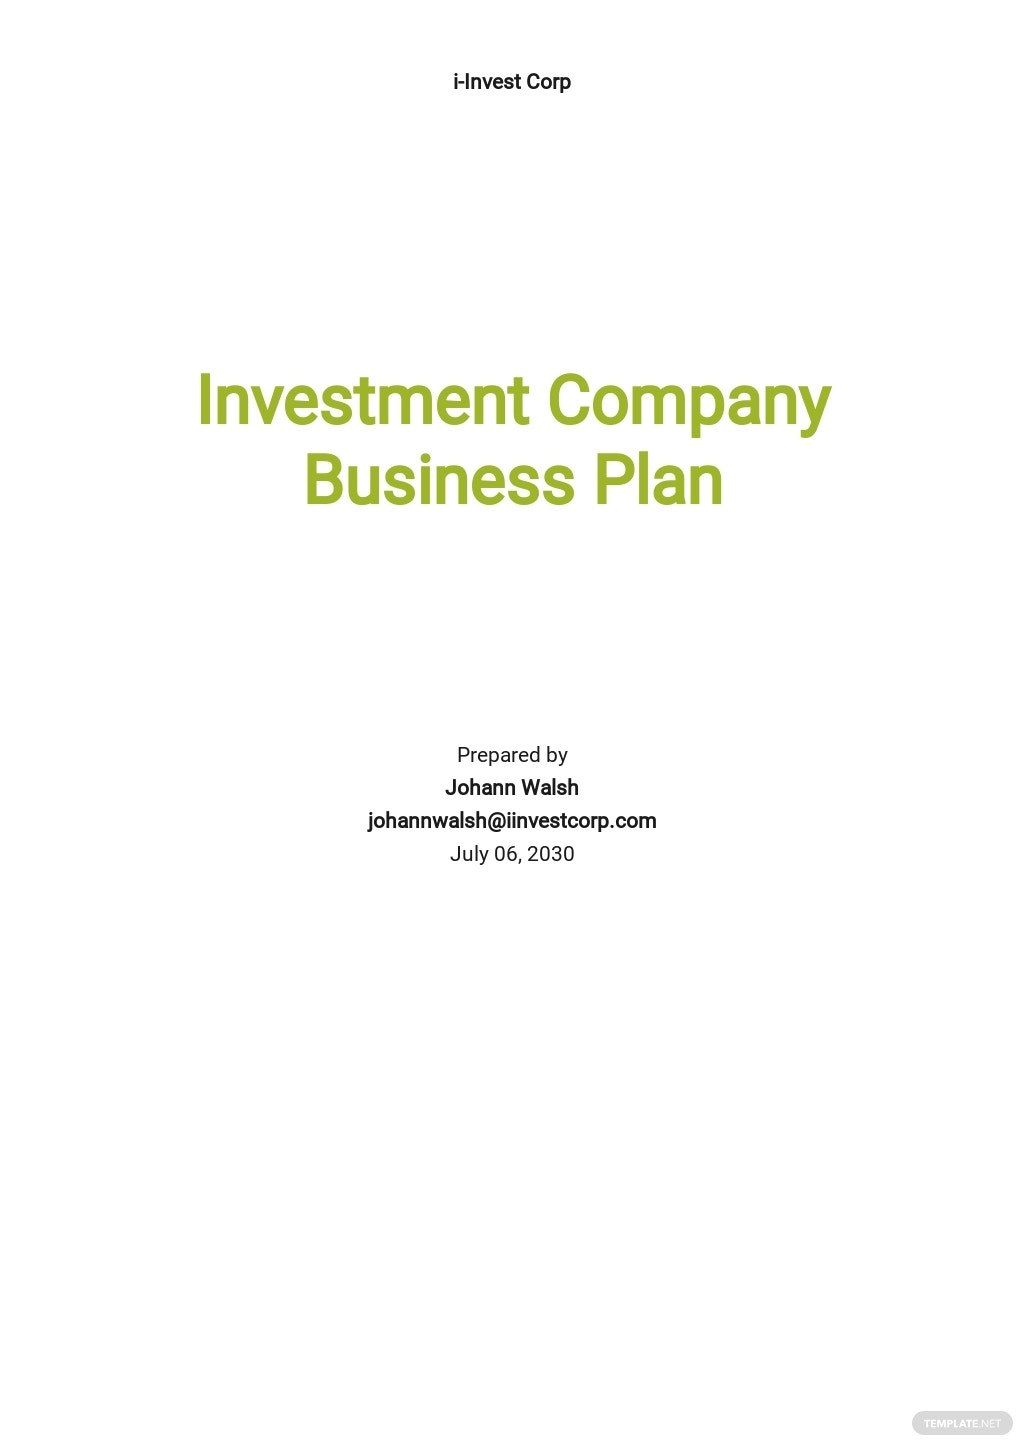 Investment Company Business Plan Template.jpe